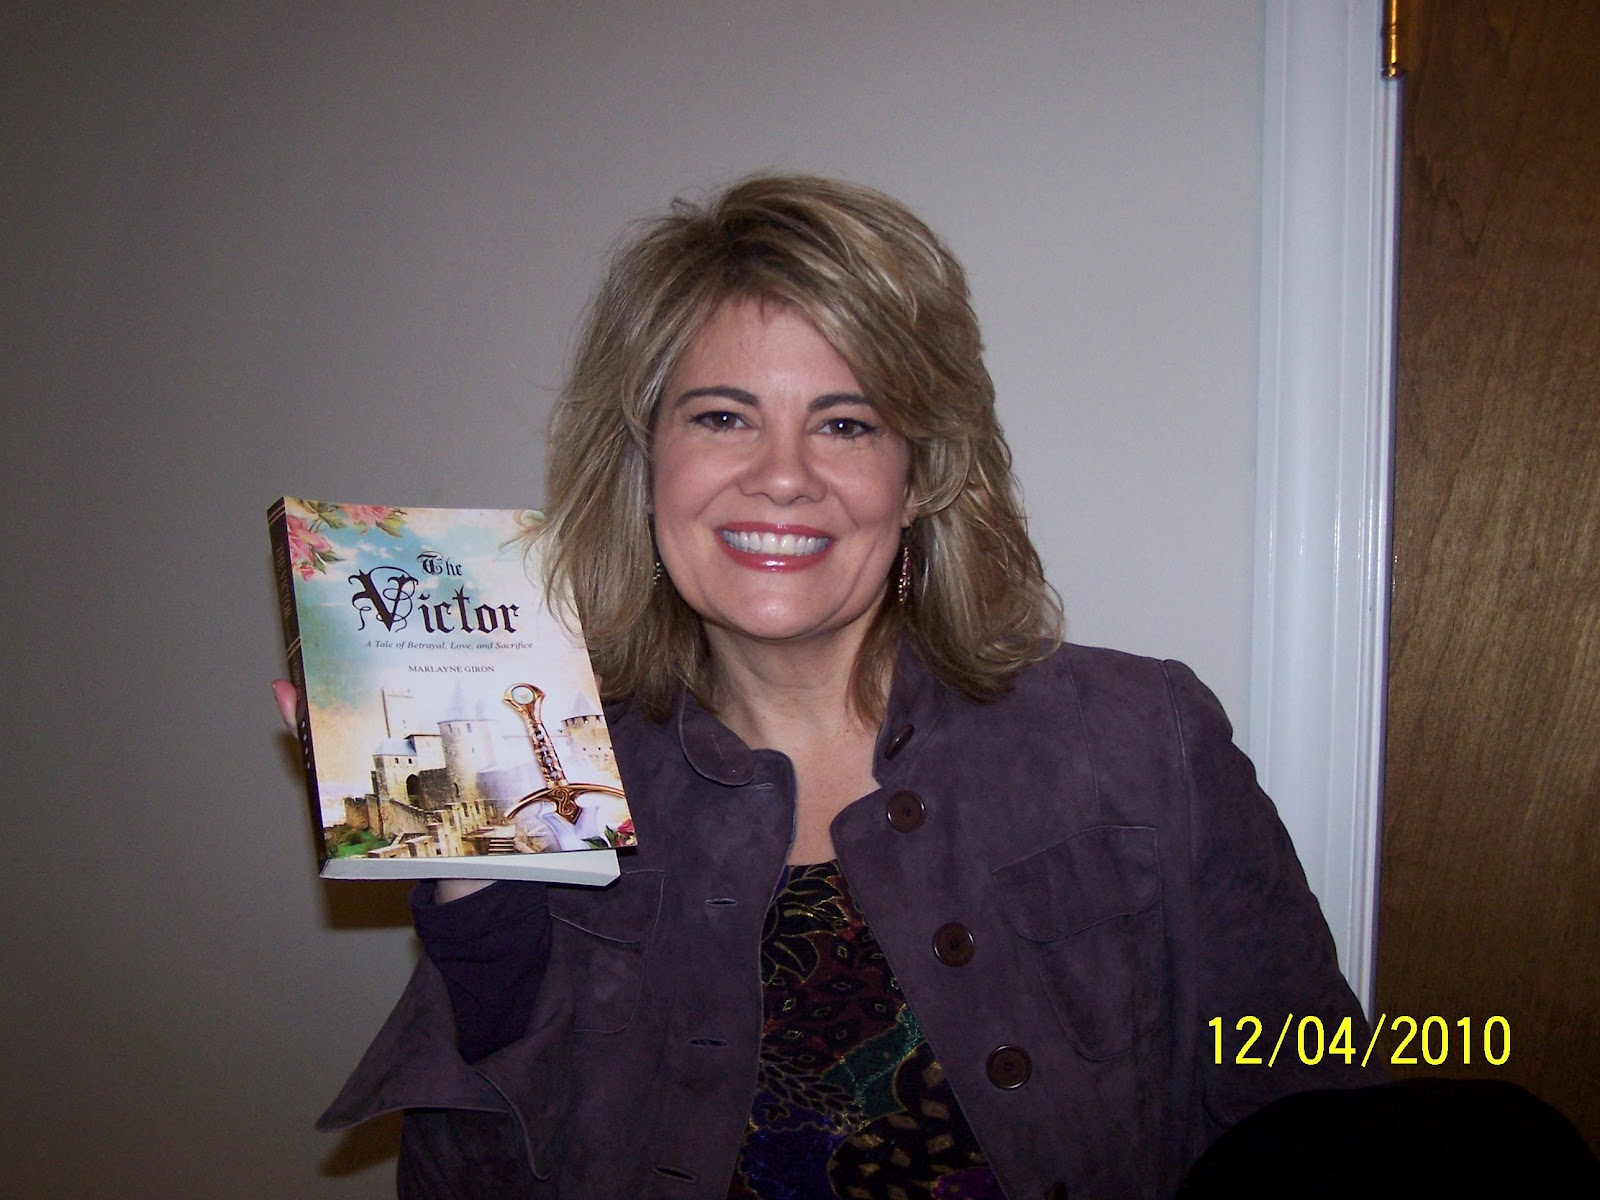 Lisa whelchel photos click for details why did lisa whelchel orce